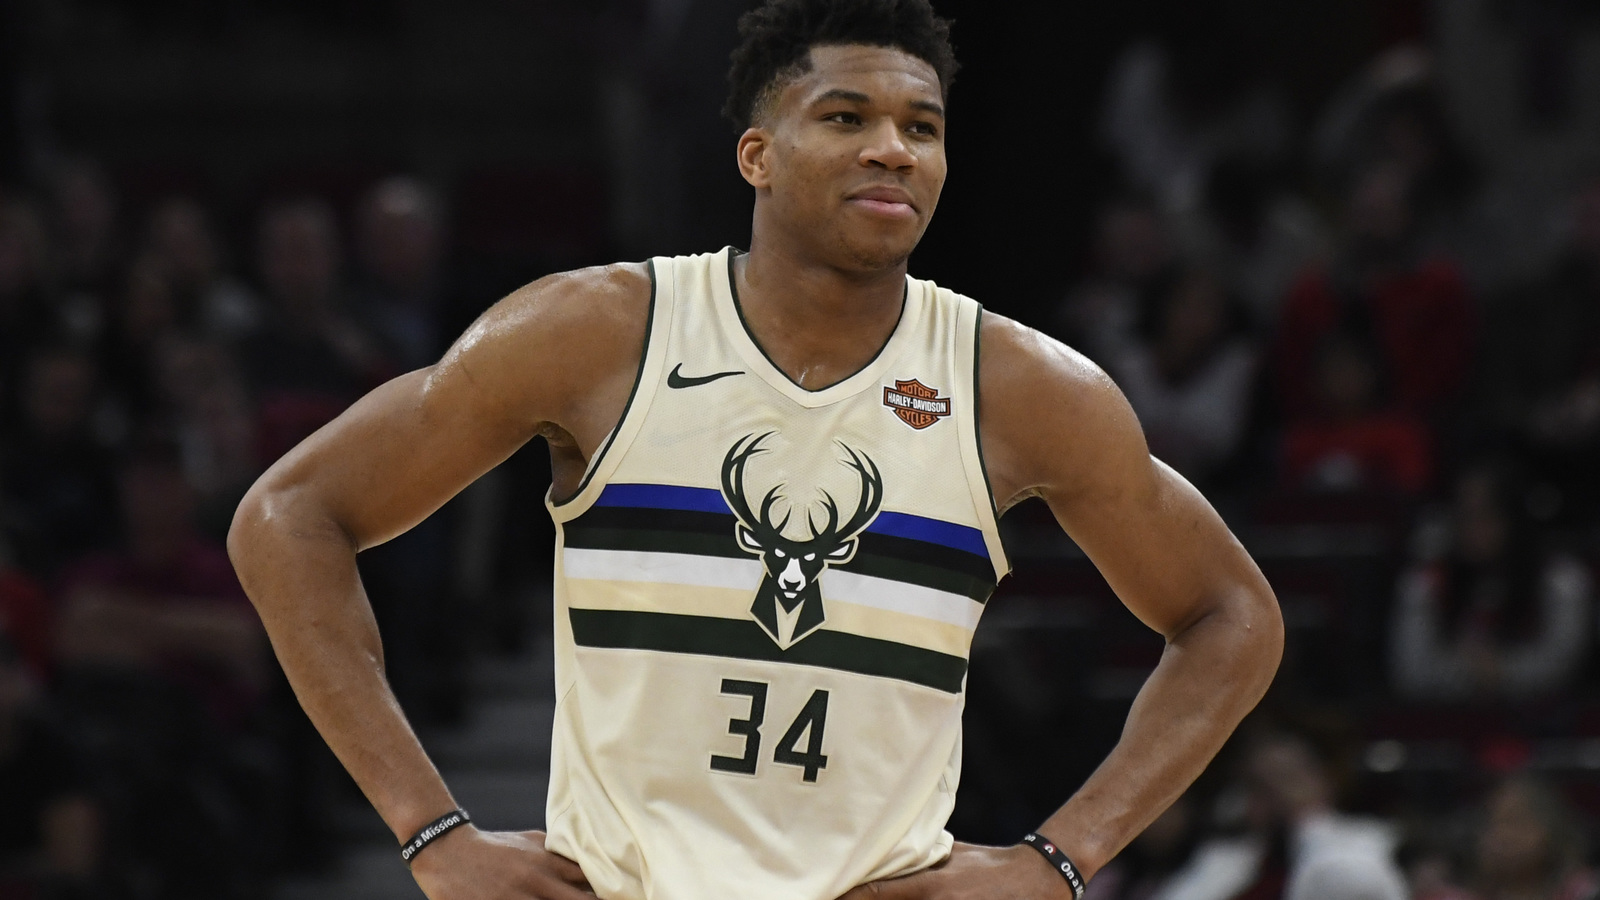 giannis antetokounmpo athlete wallpaper 63773